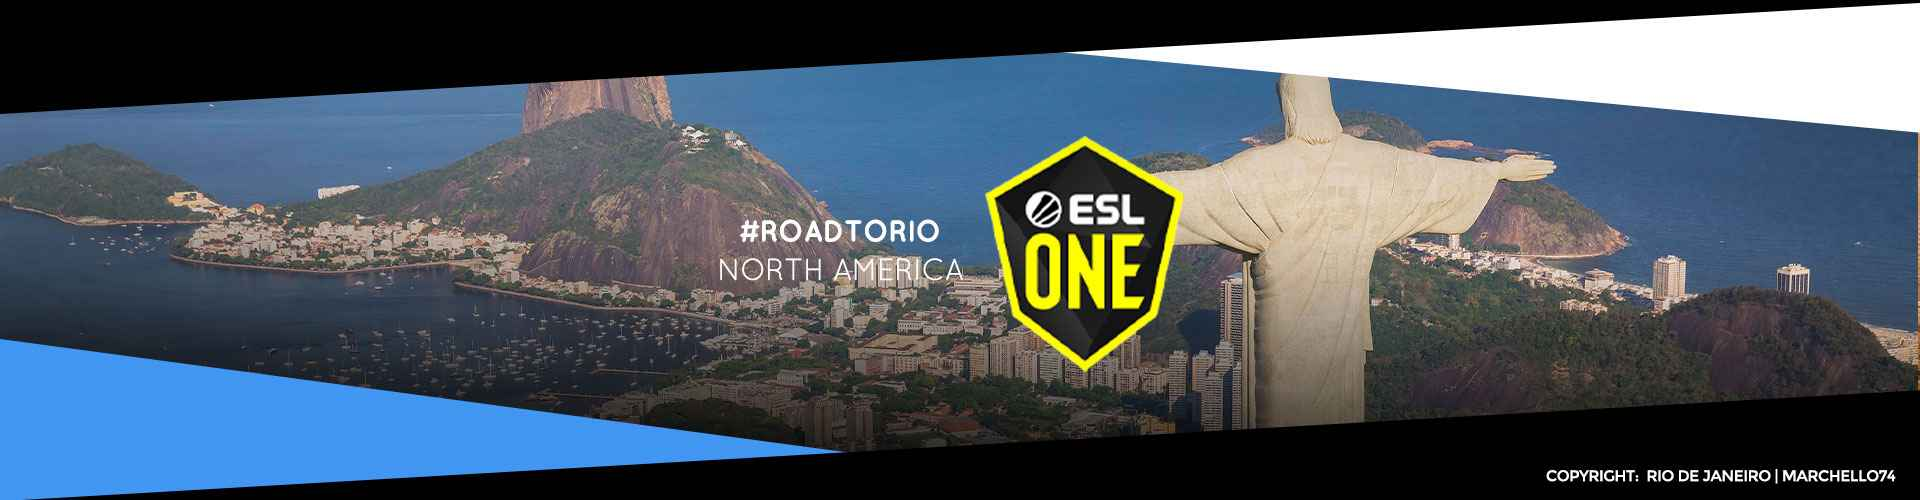 Eventsida för nordamerikanska ESL One: Road to Rio